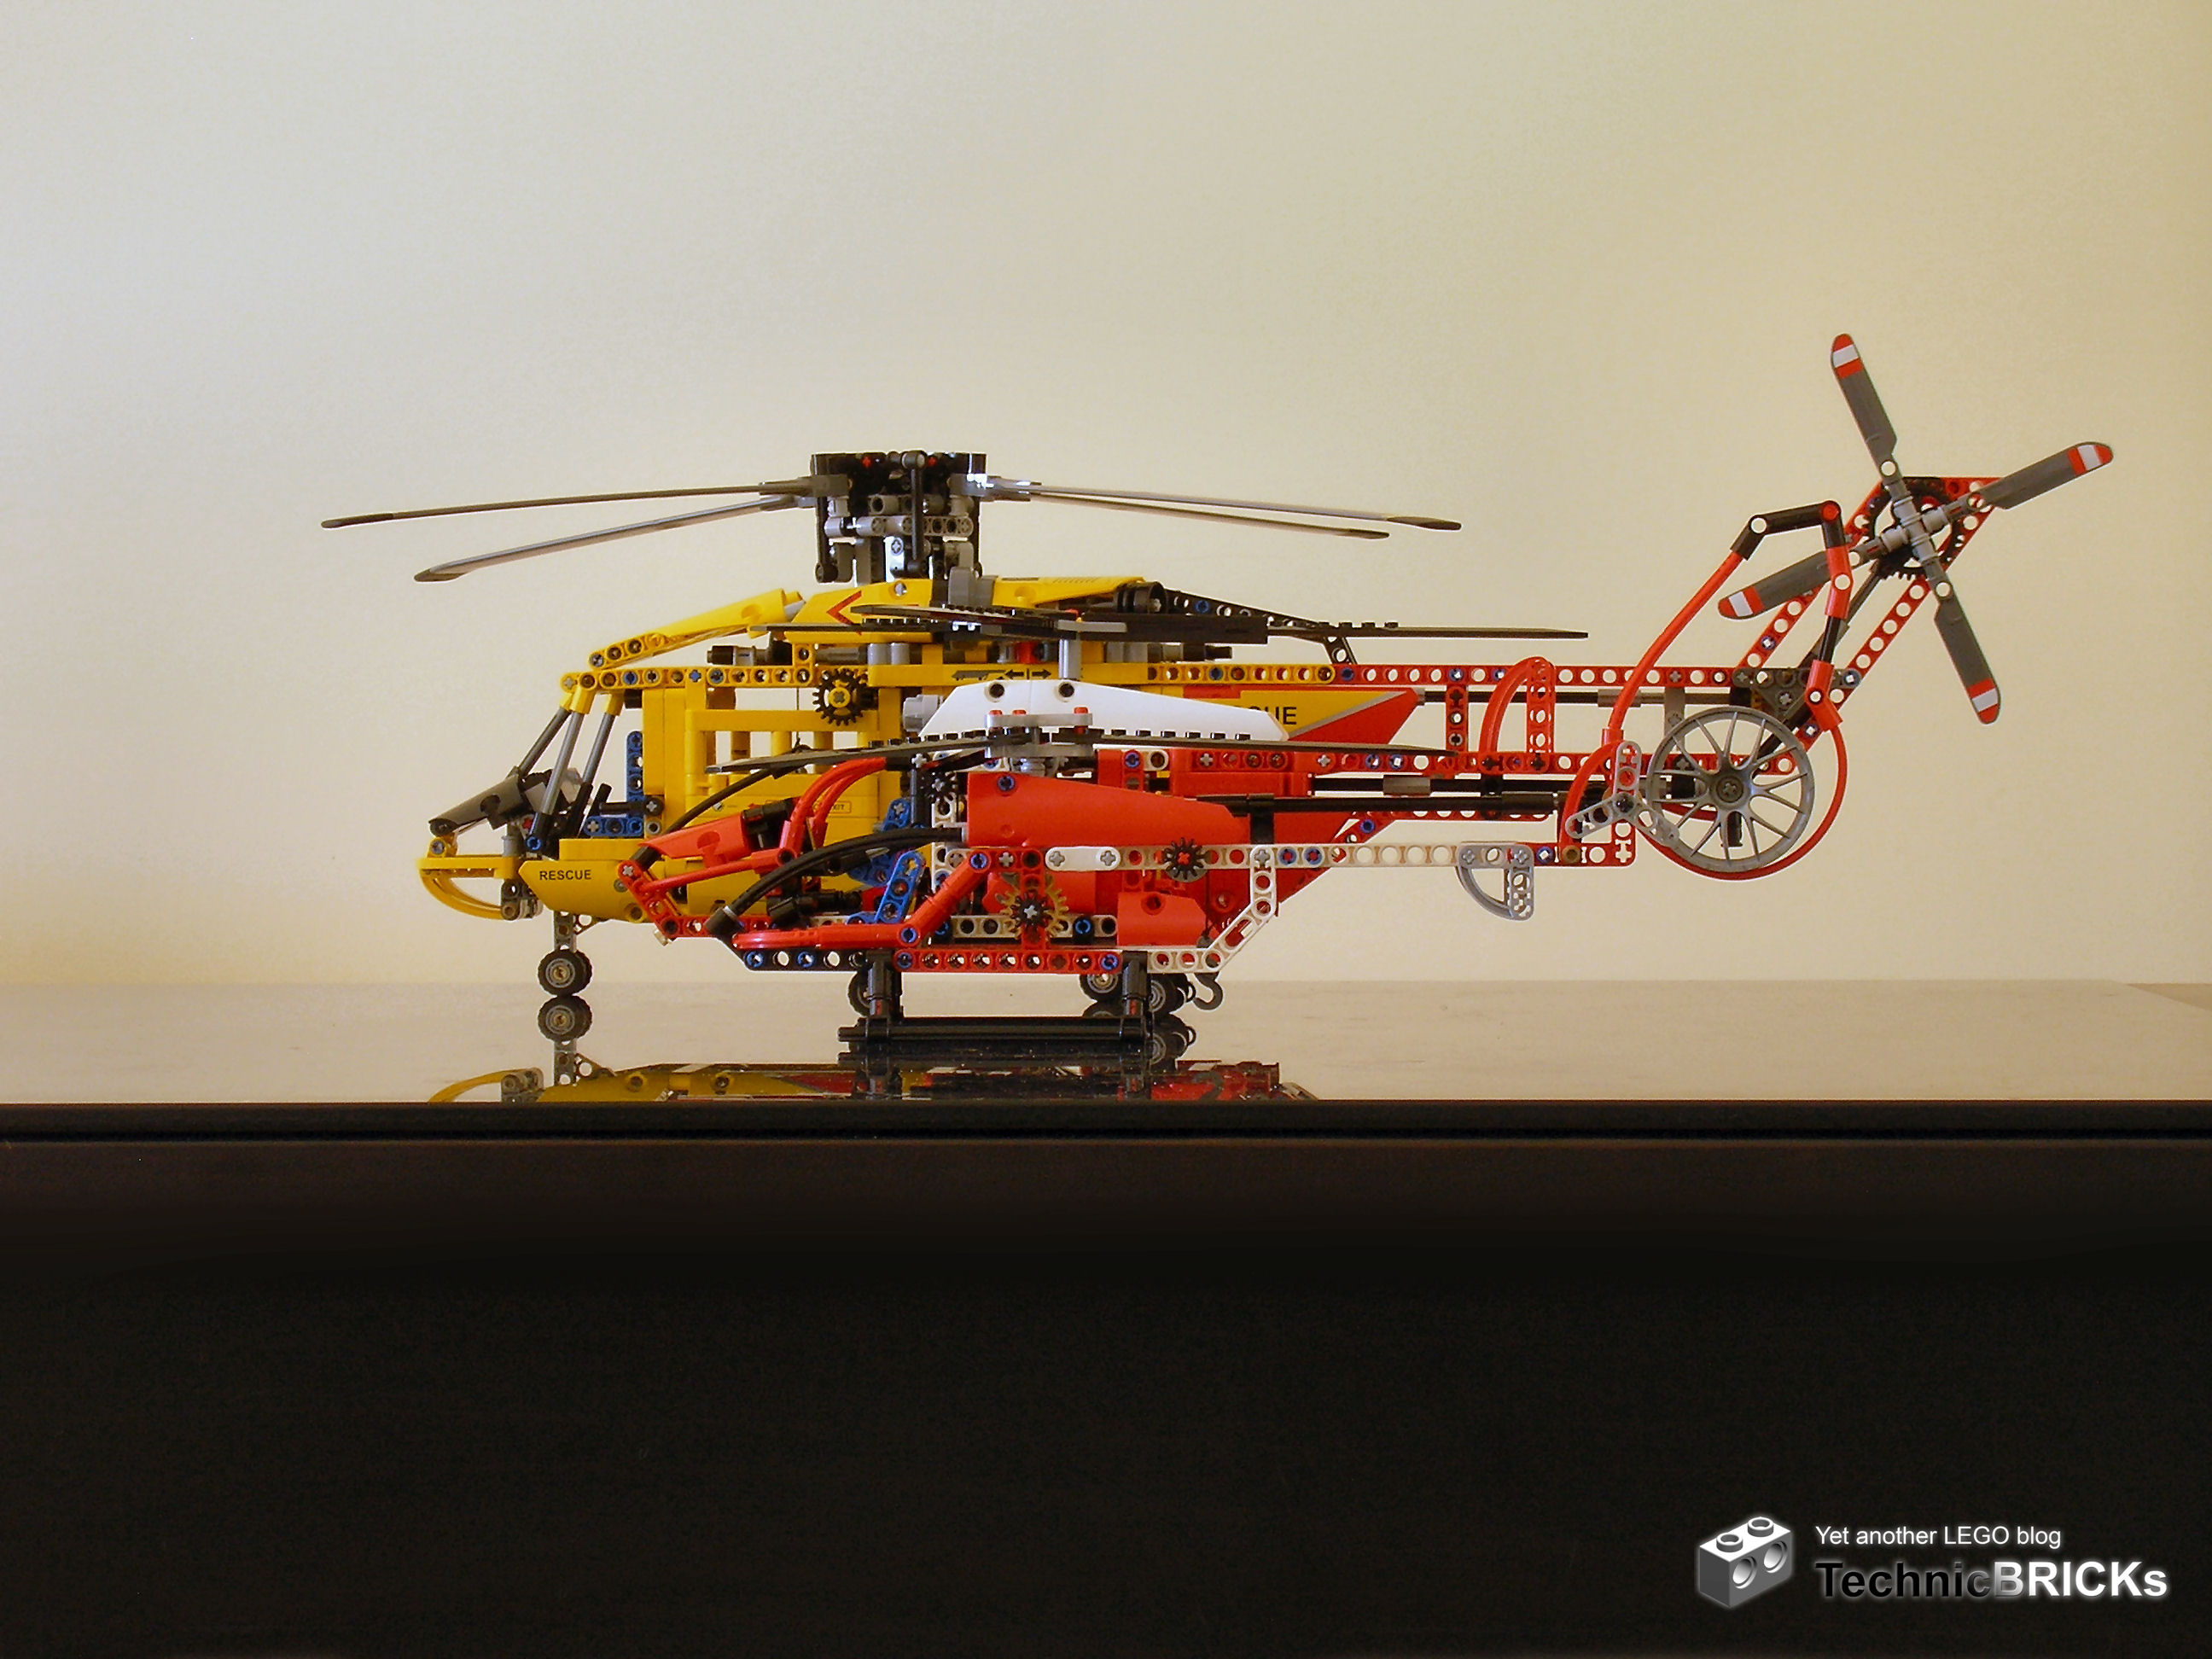 technic helicopter 9396 with Gallery on Rescue Helicopter 8068 also Gallery furthermore Lego Vehicles Collection Set 5004190 in addition Lego Helicopter Set 9396 Instructions moreover The Best 10 Lego Set Of All Time.